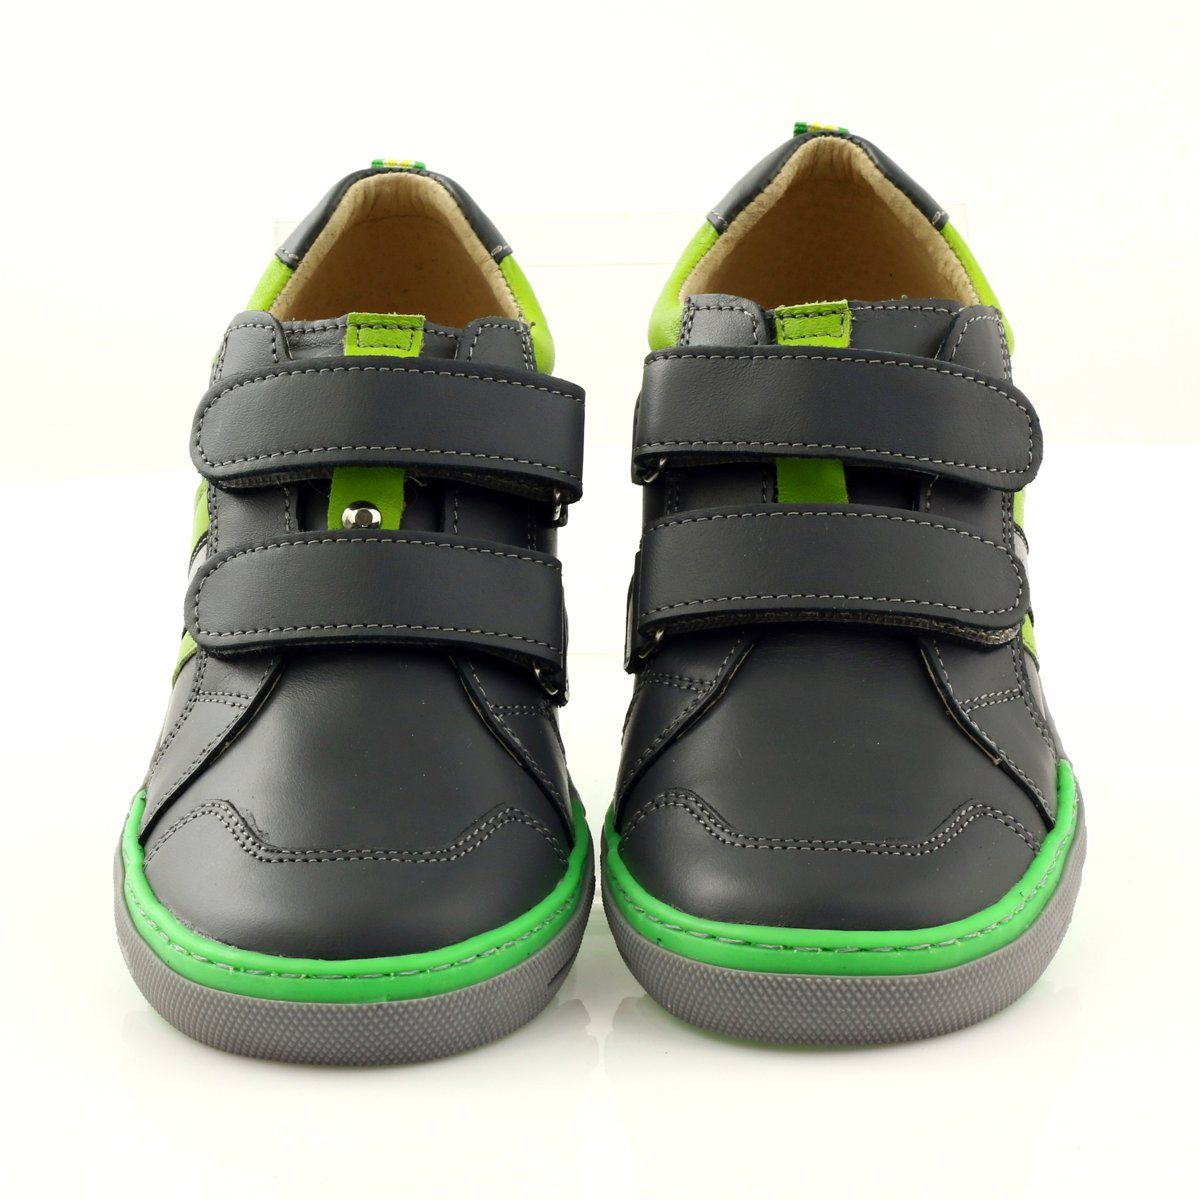 Shoes With A Reflective Element Bartus Green Grey Childrens Shoes Kid Shoes Shoes